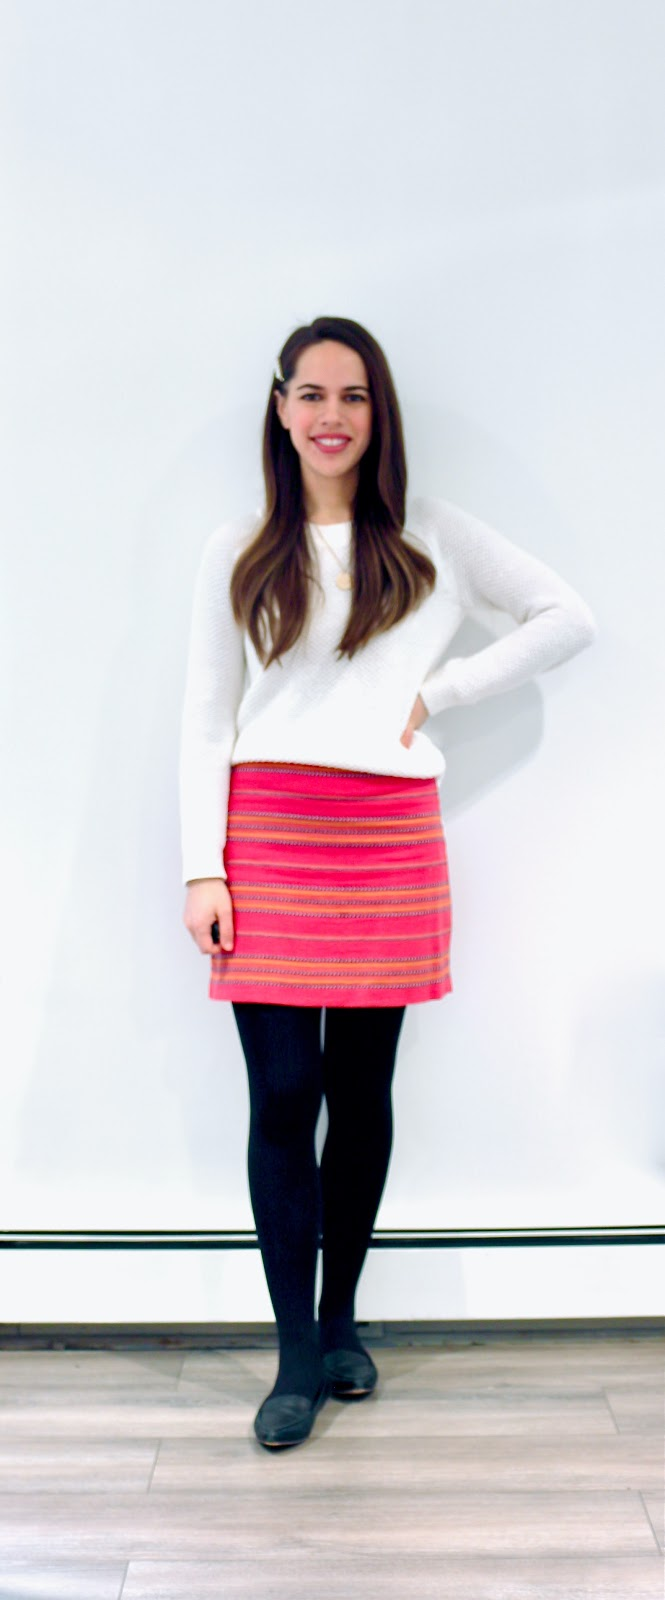 Jules in Flats - Striped Mini Skirt (Business Casual Winter Workwear on a Budget)